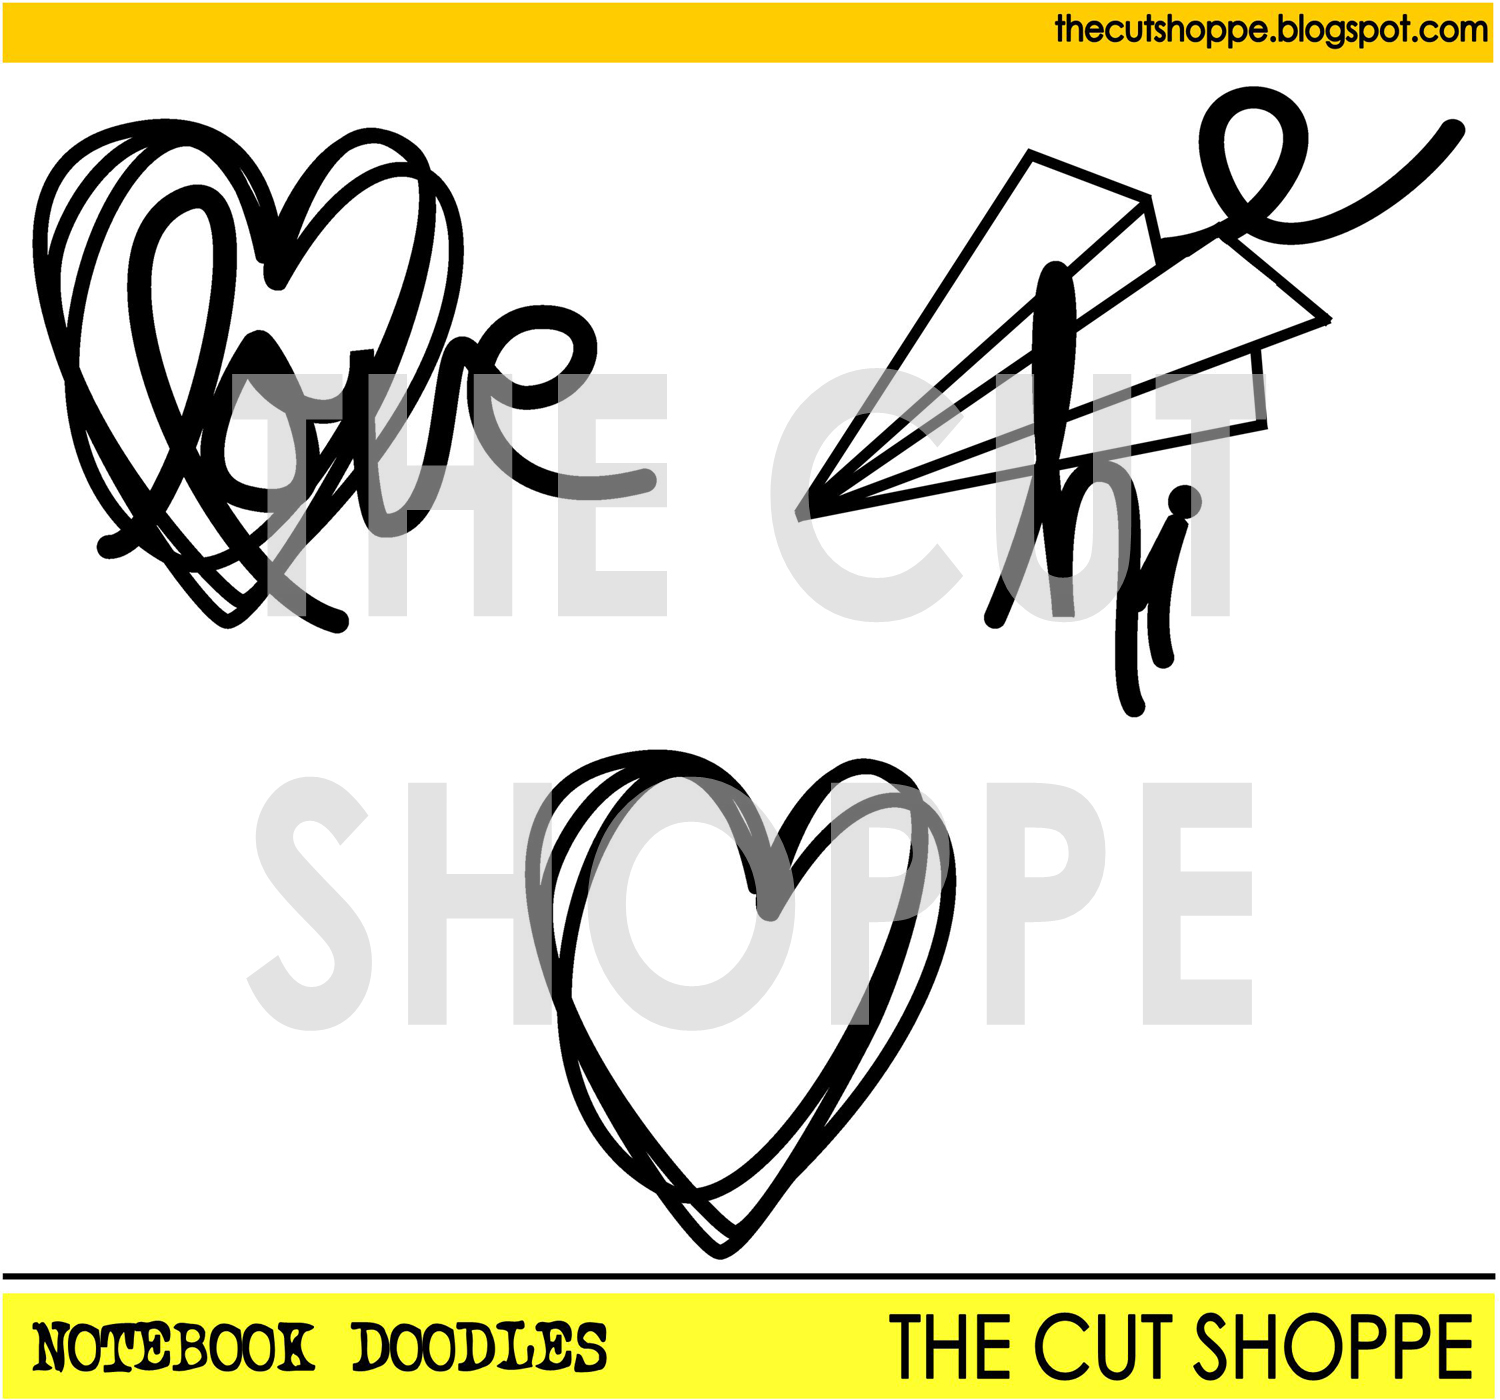 https://www.etsy.com/listing/201045127/the-notebook-doodles-cut-file-includes-3?ref=shop_home_active_2